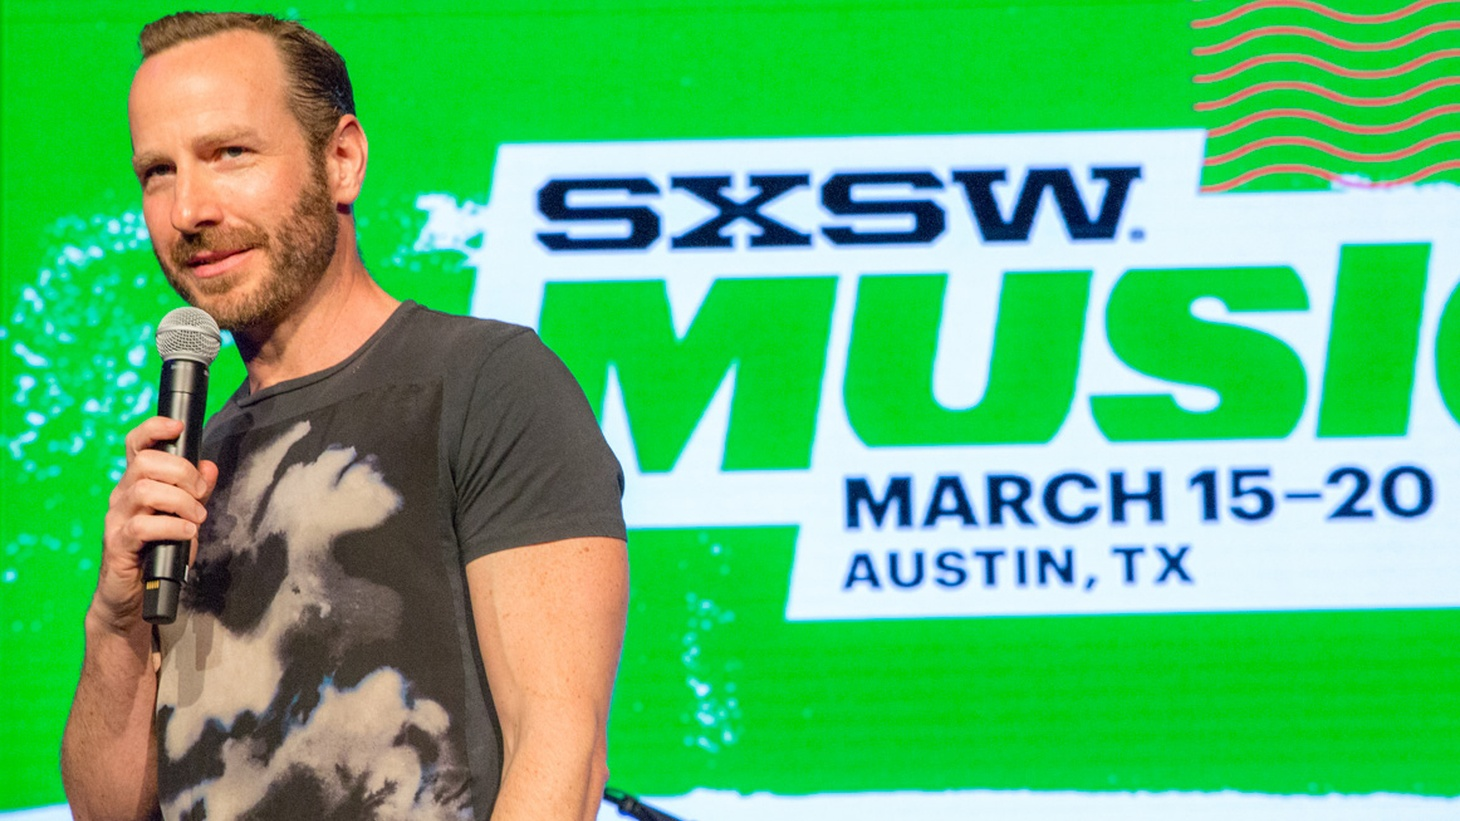 Jason Bentley hosts Morning Becomes Eclectic LIVE from the SXSW Music Festival in Austin, Texas.